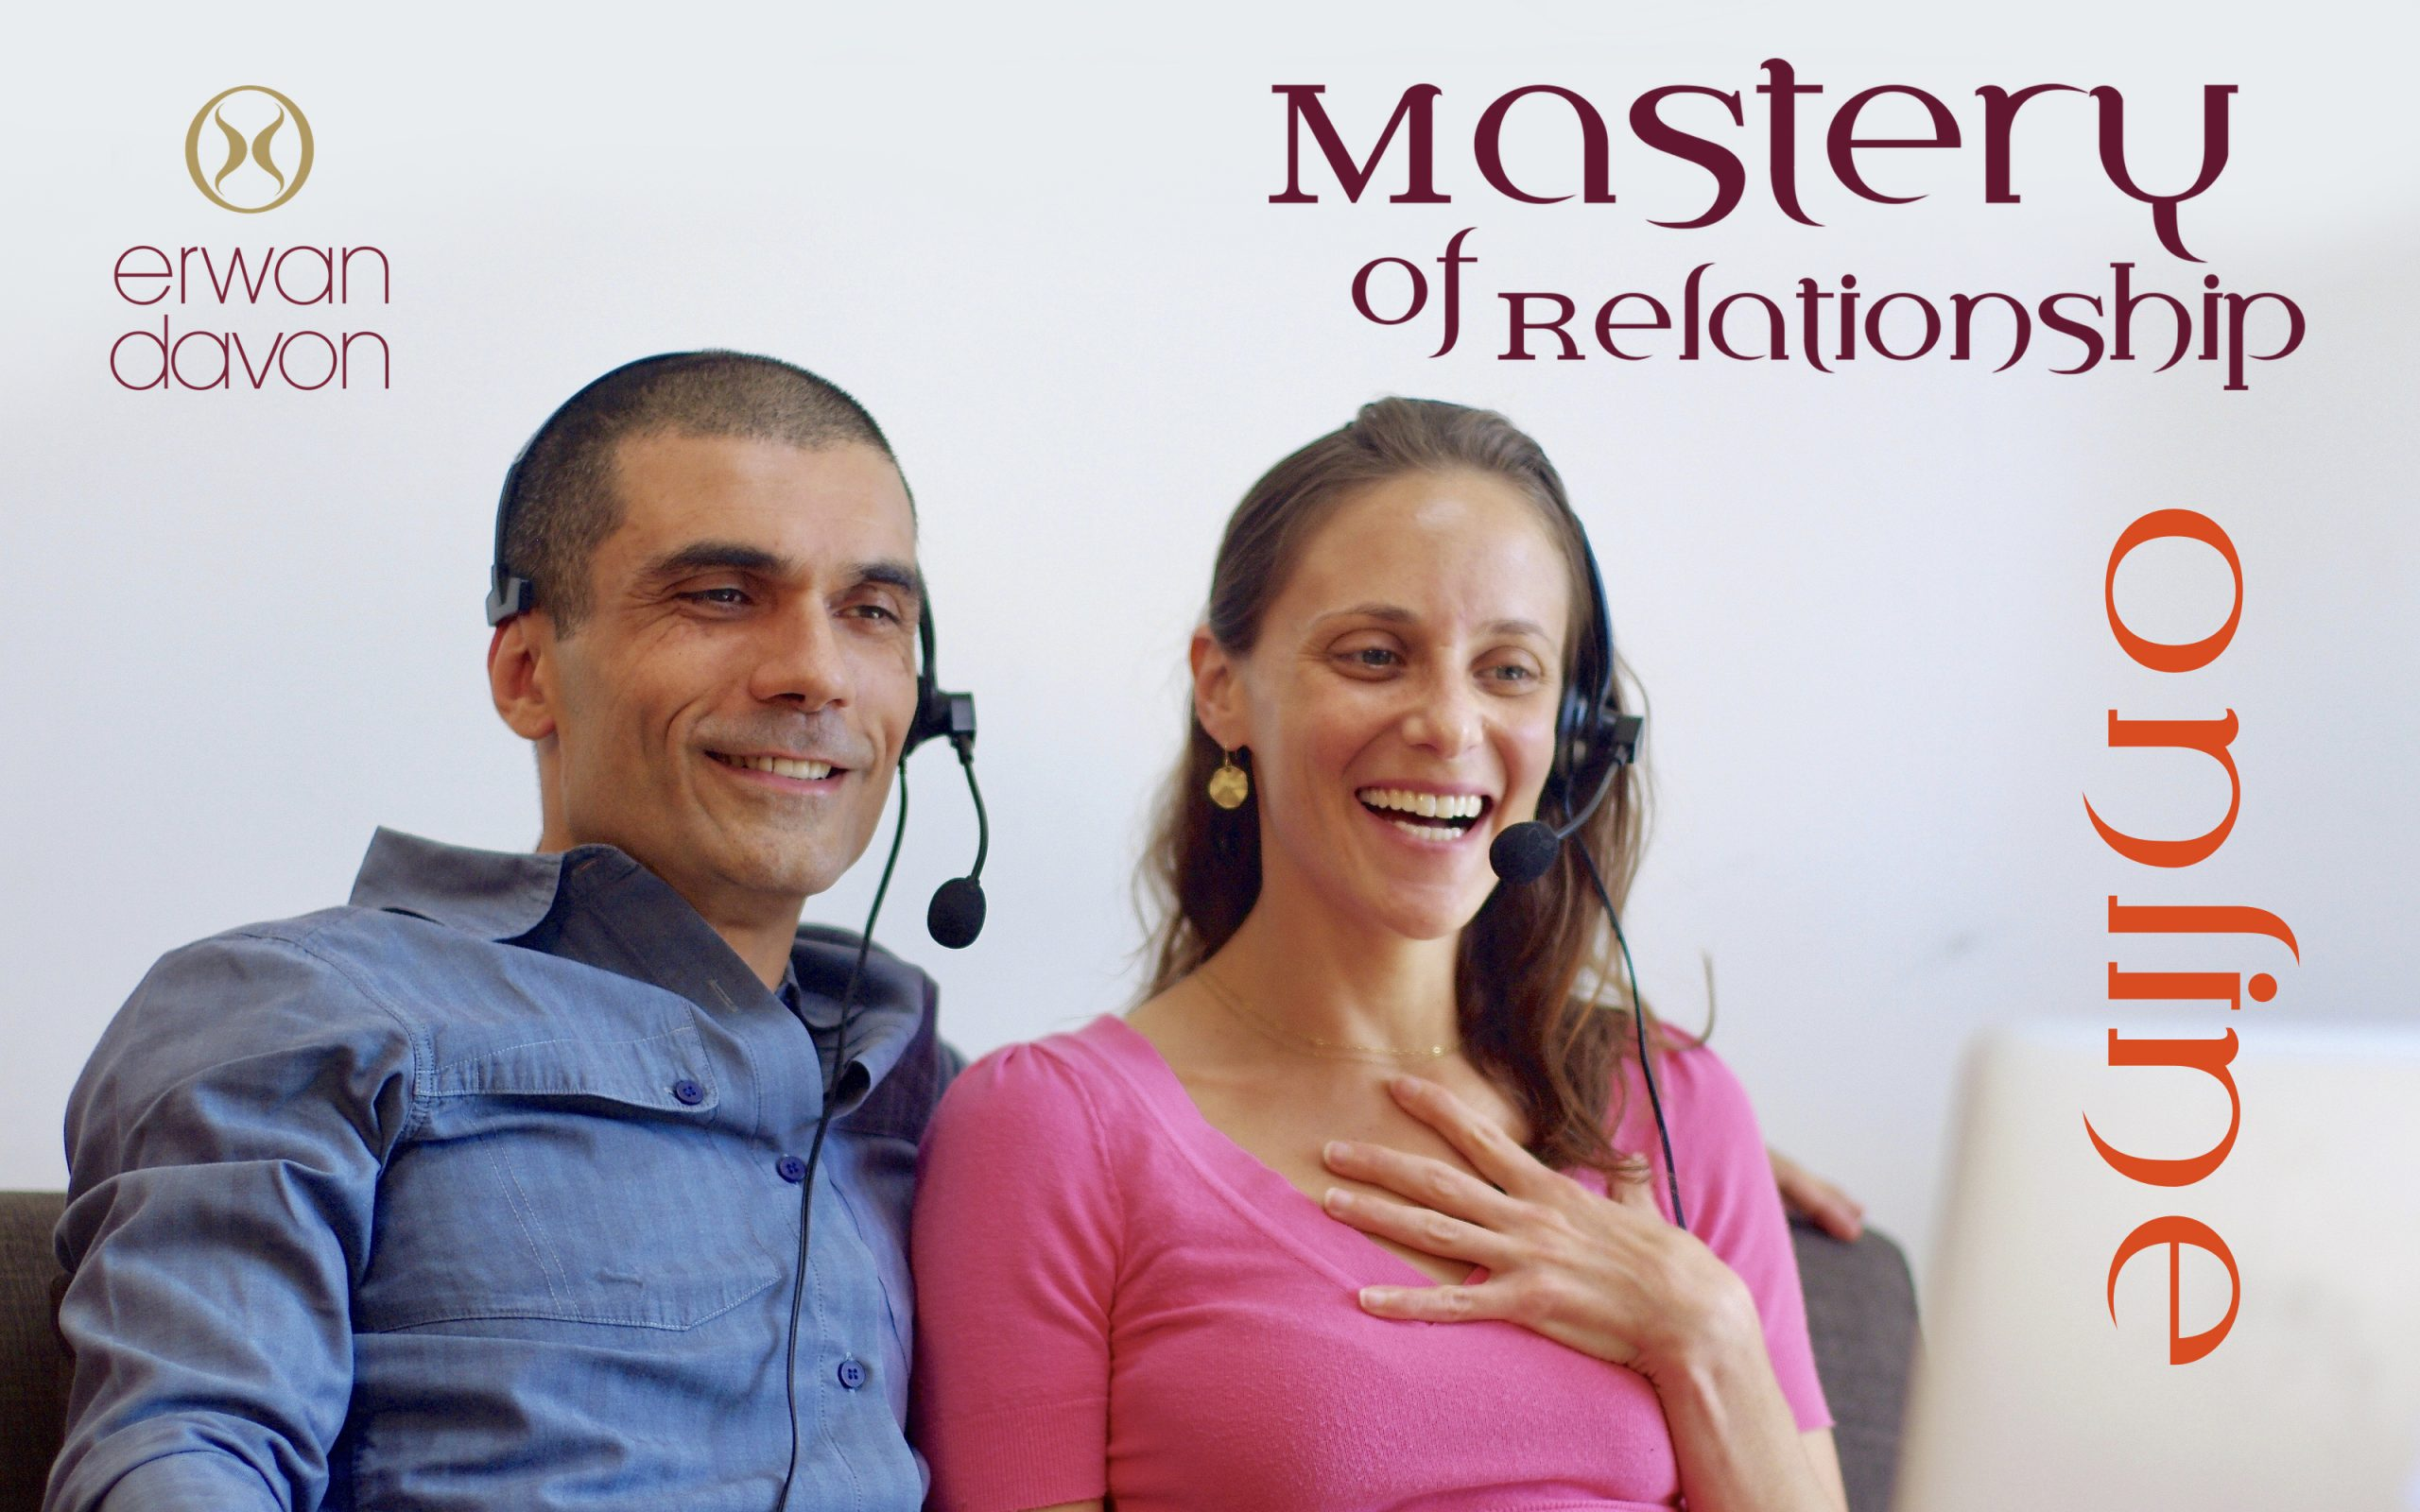 Mastery Of Relationship Online